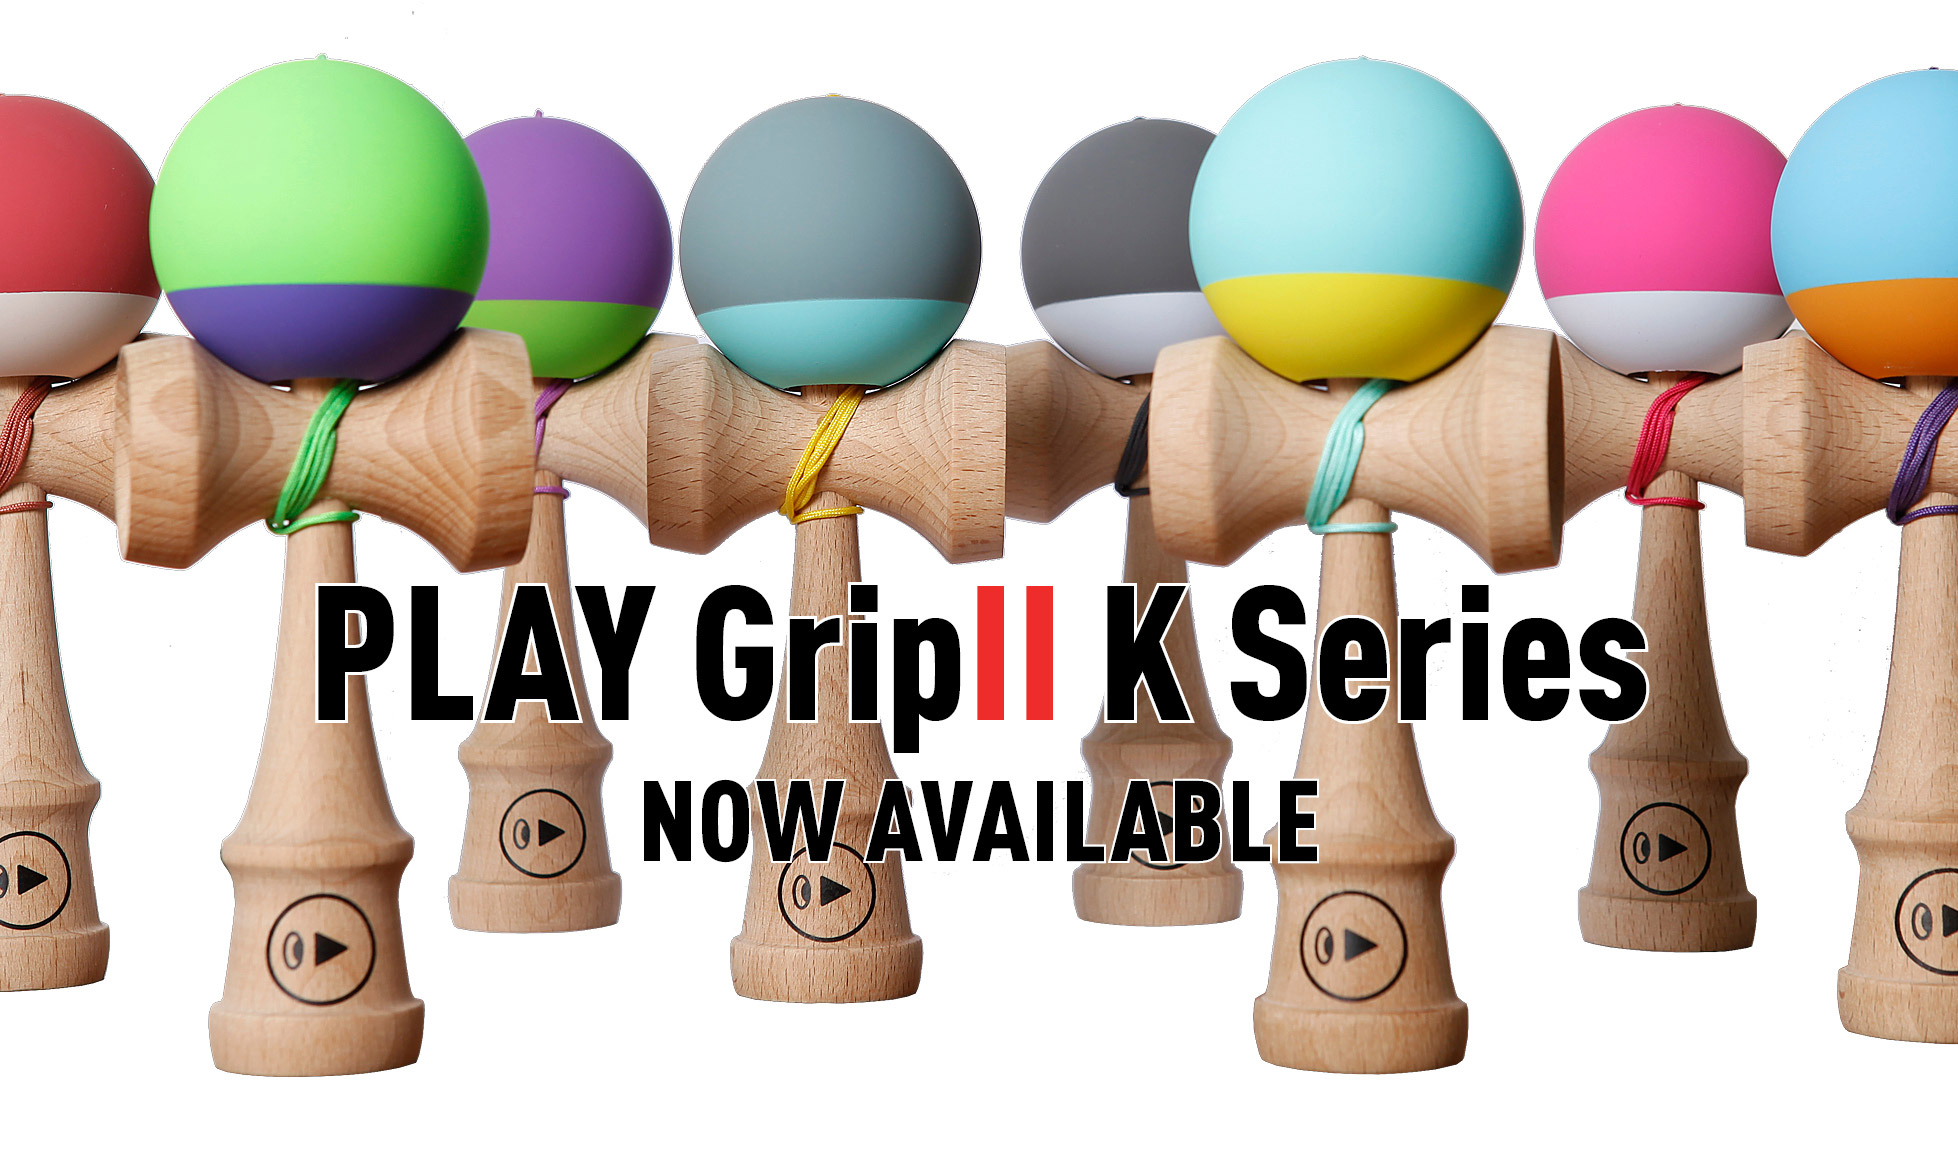 KENDAMA PLAY PRO II K - New models available now